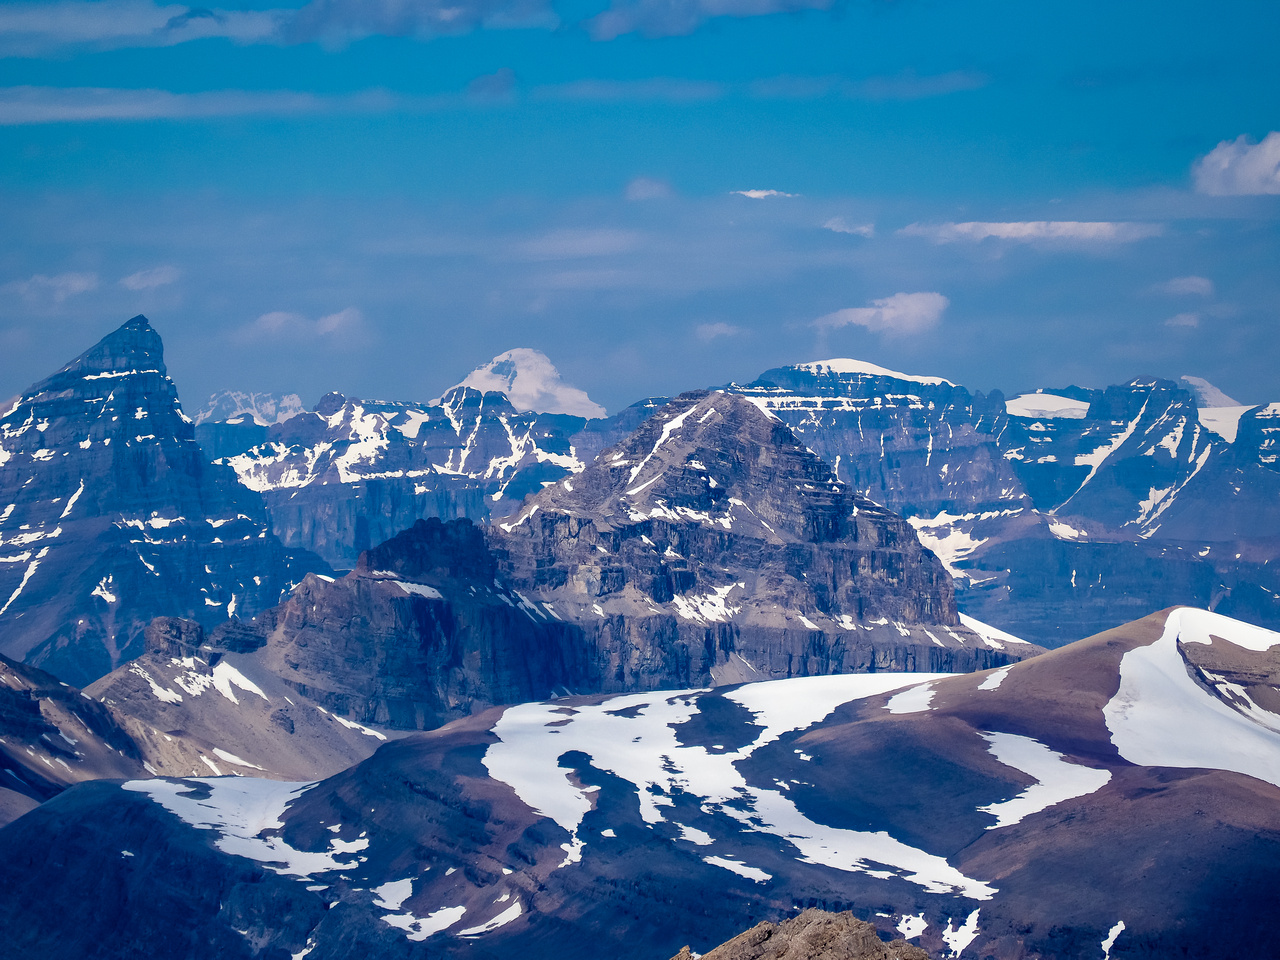 Mount Columbia rises over Mount Weed in the foreground, Chephren at left.